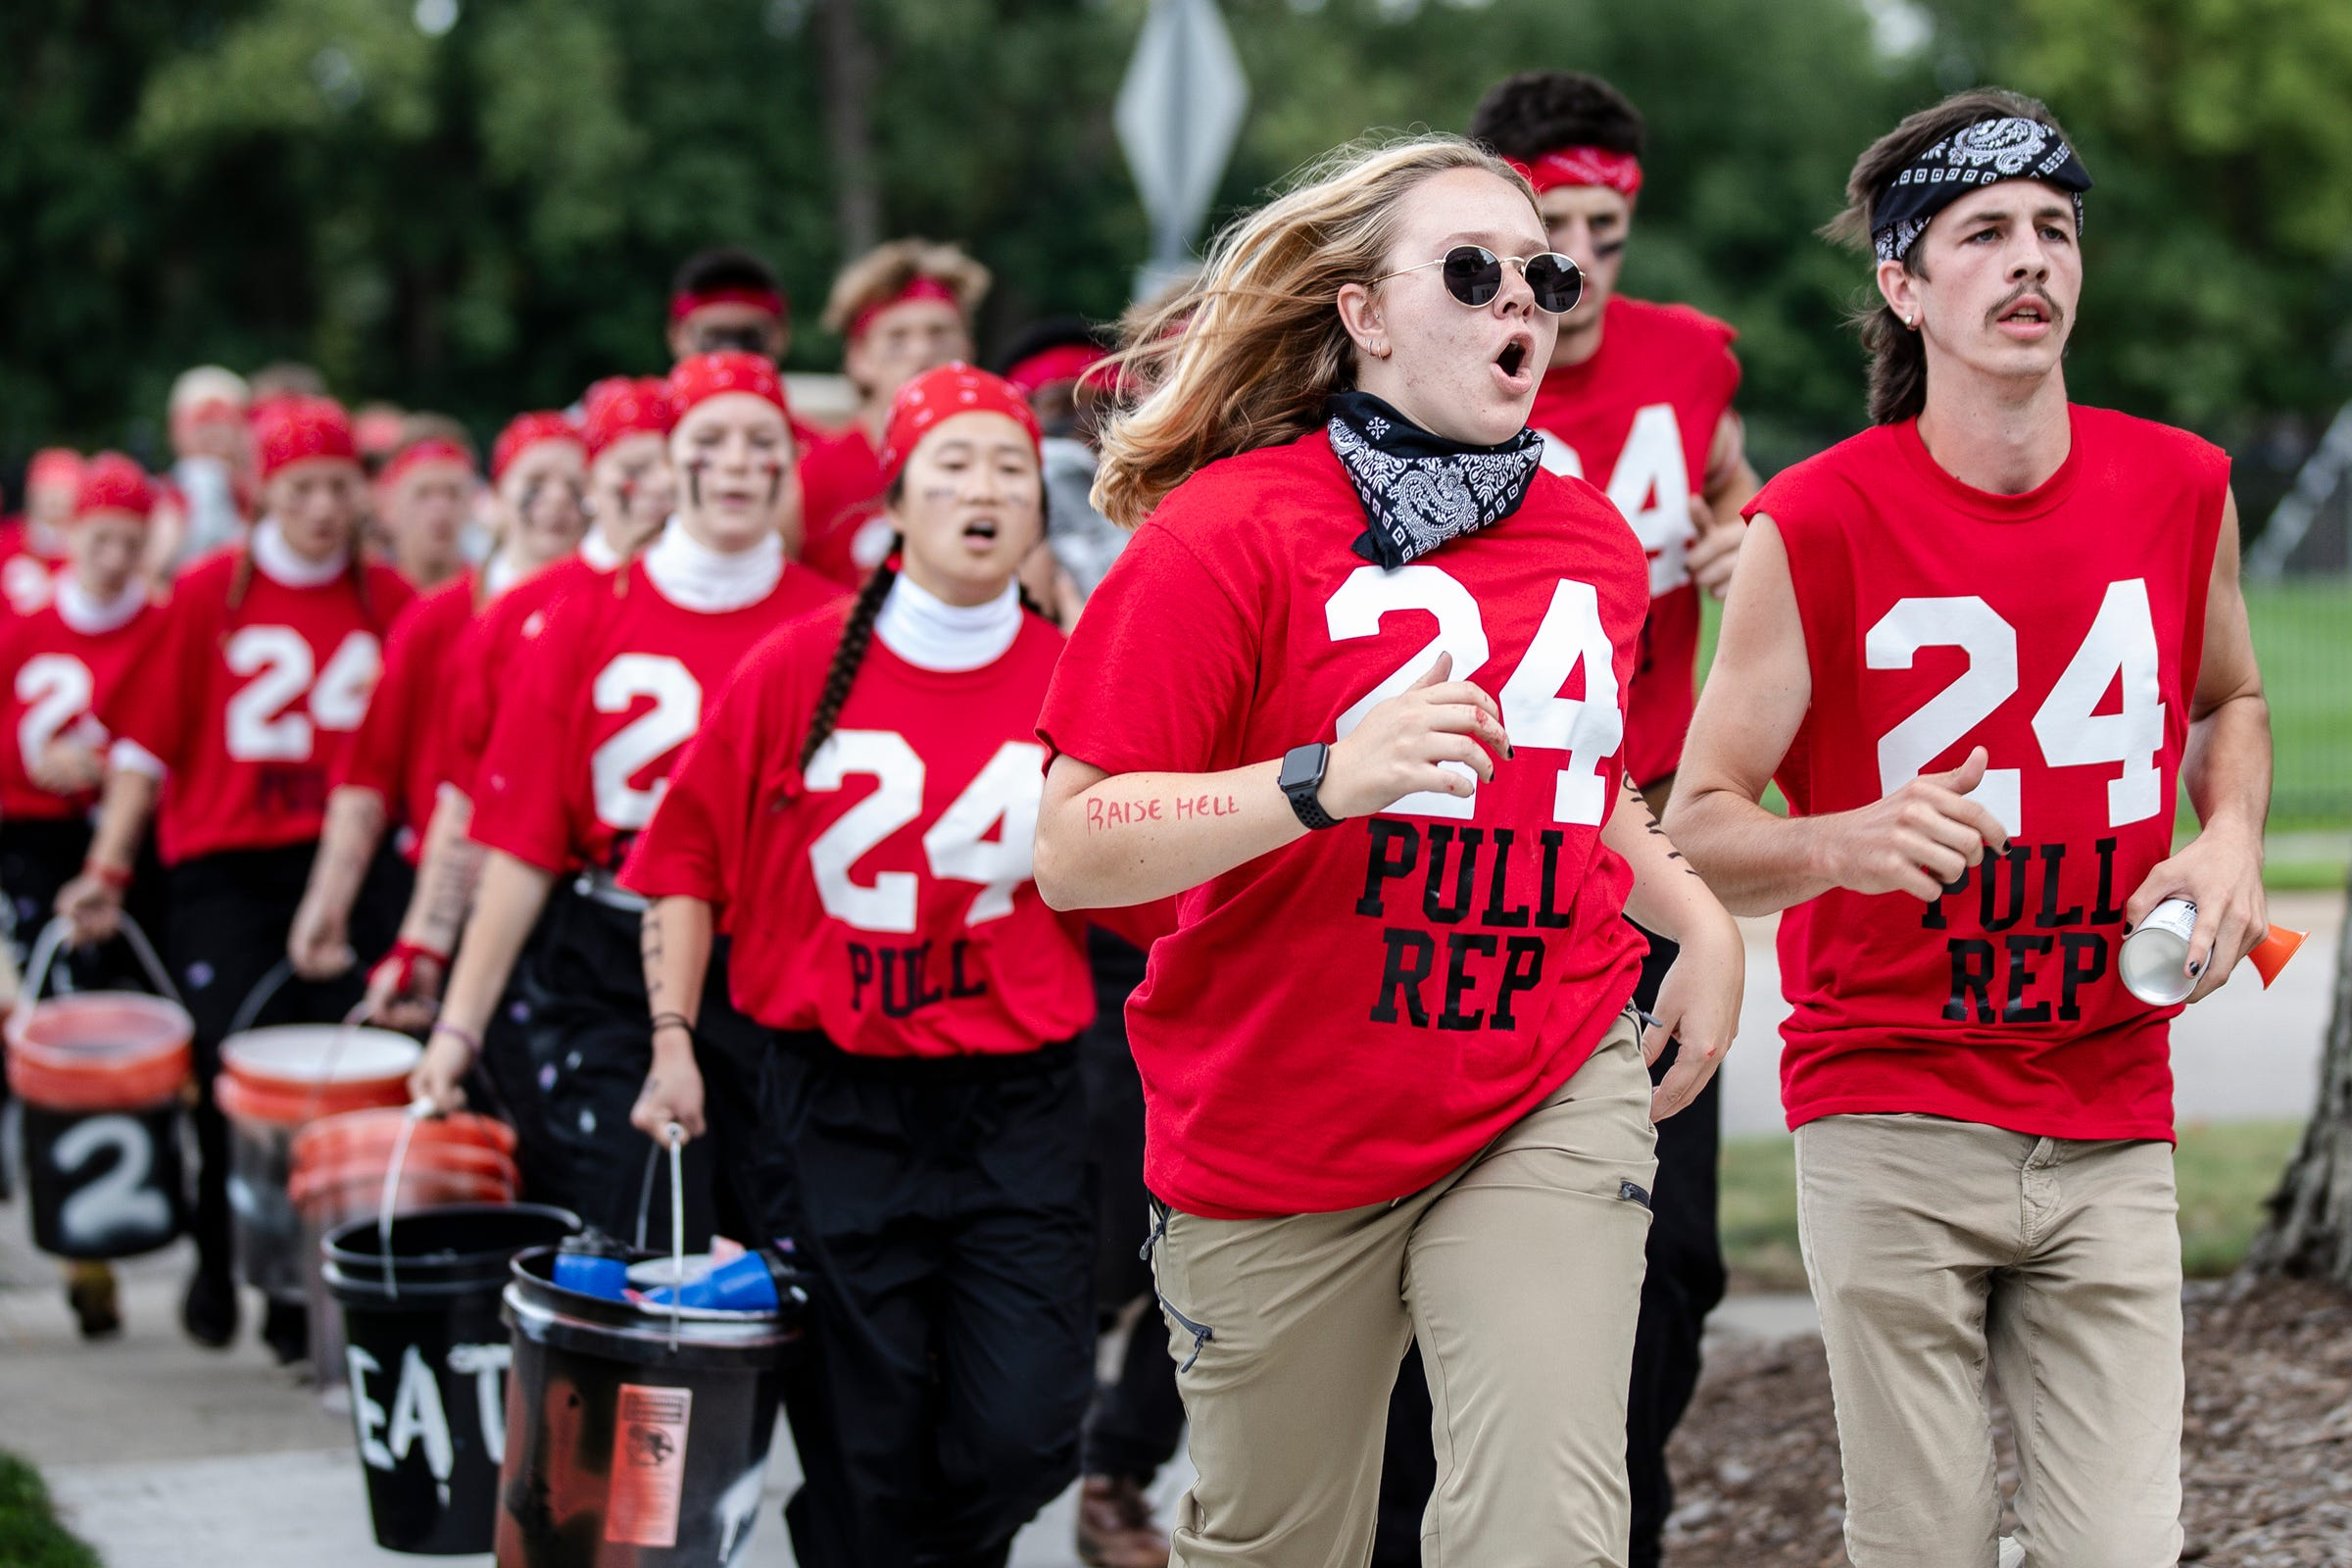 Members of the even year pull team led by representatives Ellie Margason, center, and Cole Manilla, right, arrive for the Pull, an annual tug-of-war between the freshmen and sophomore classes at Hope College in Holland on Saturday, Oct. 2, 2021.